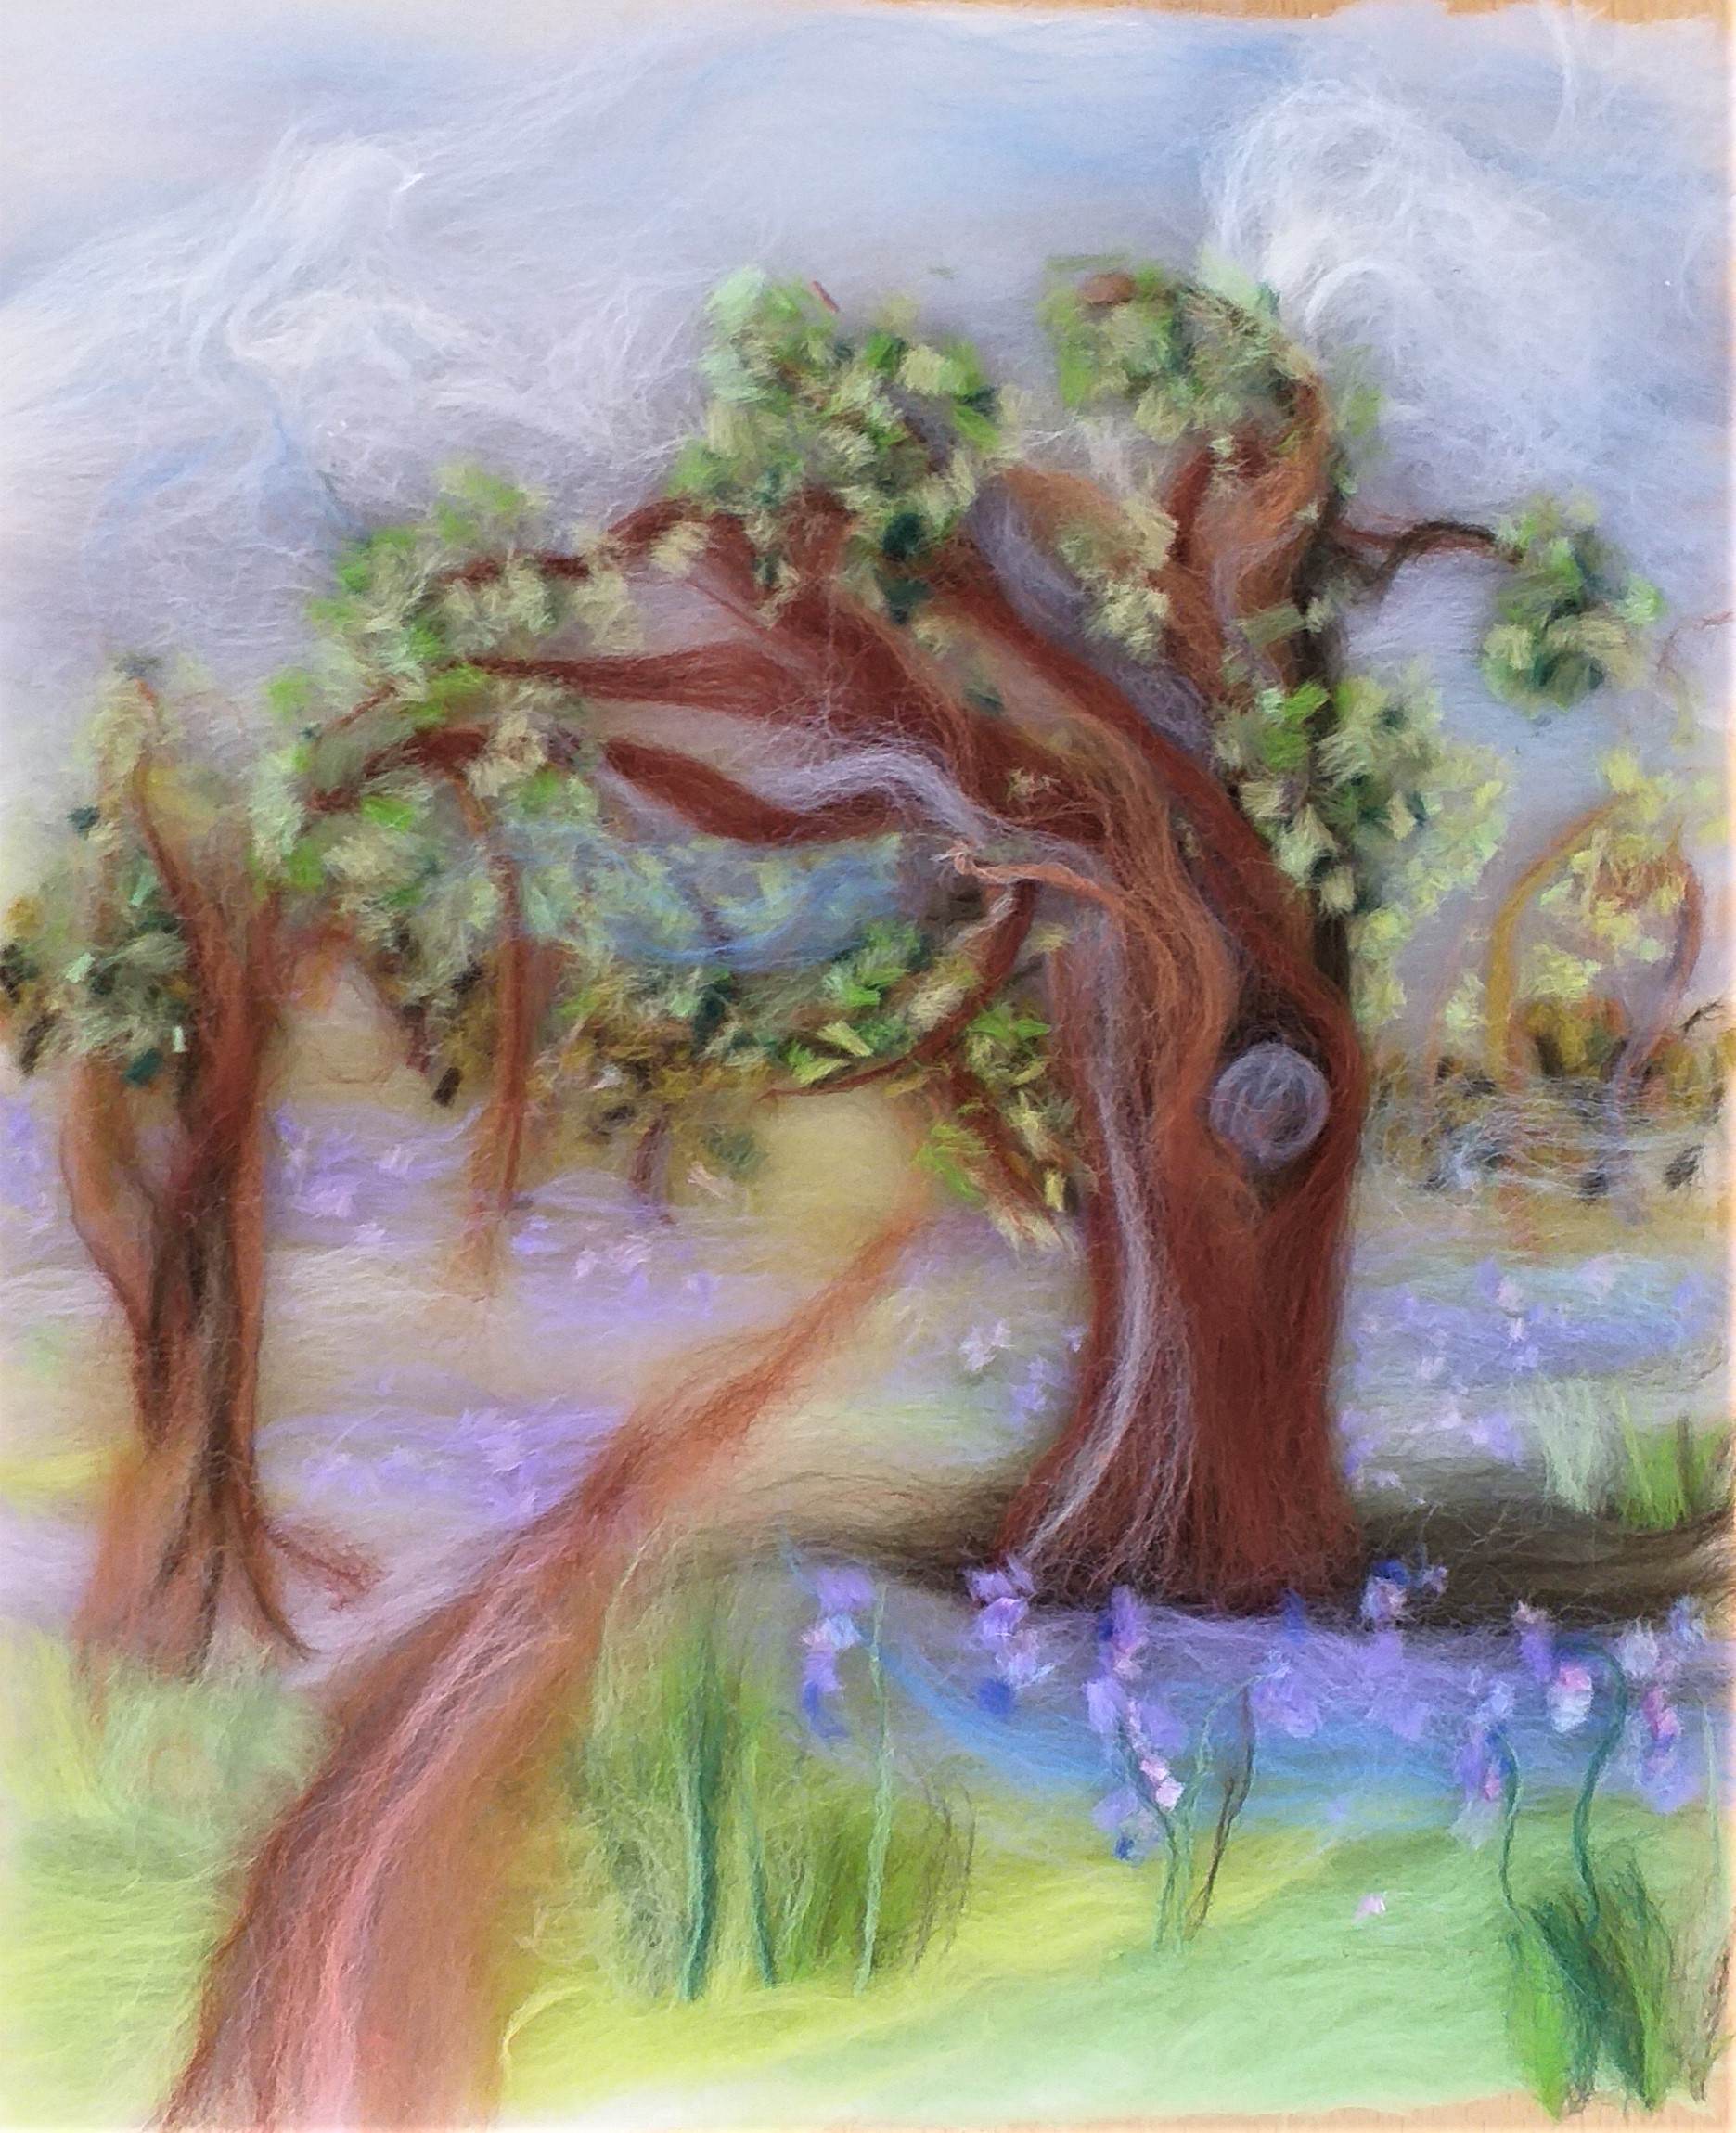 The new wool painting course 'Bluebell woods' at Bevere Gallery in Worcester was a success